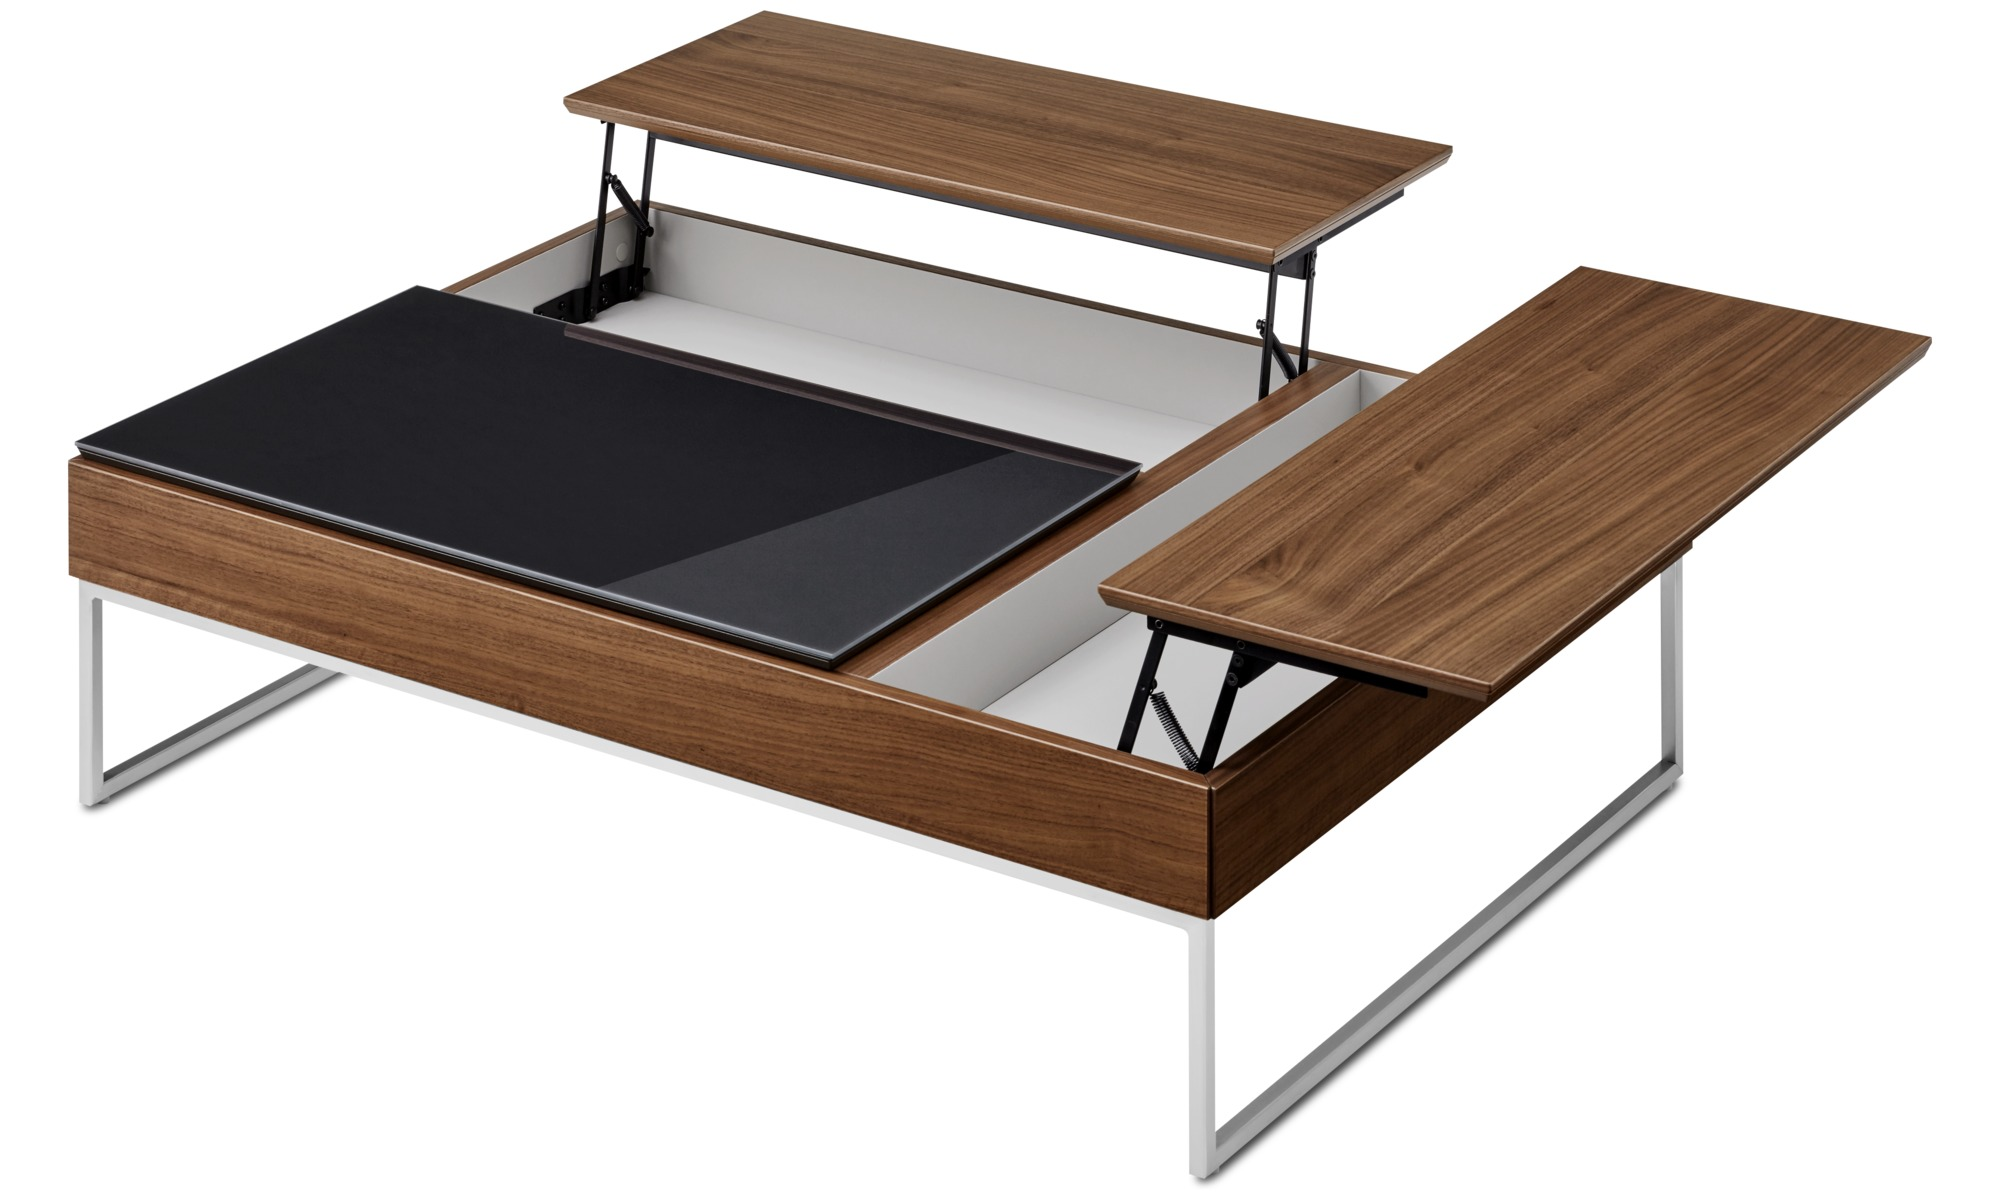 Coffee tables - Chiva functional coffee table with storage - BoConcept